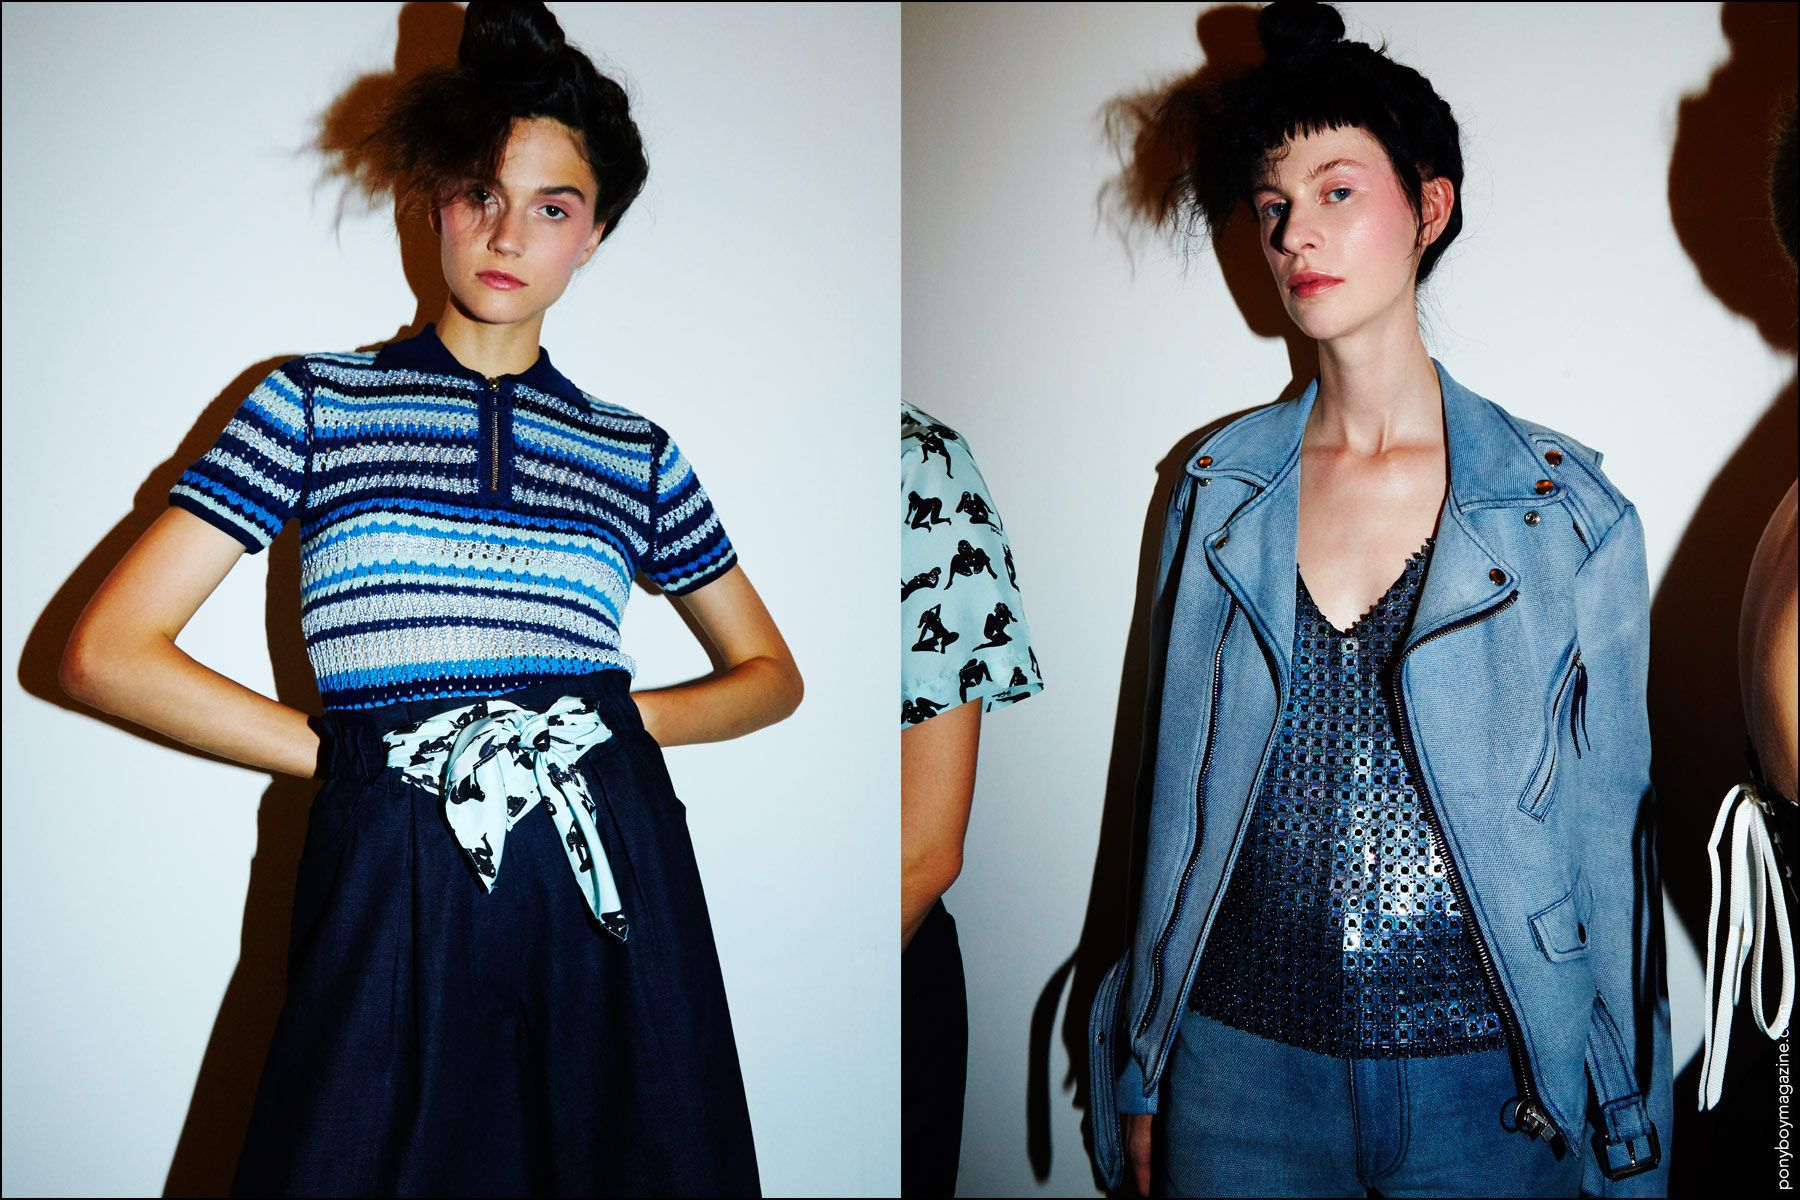 Models in blue designs, backstage at the Adam Selman Spring/Summer 2017 show. Photography by Alexander Thompson for Ponyboy magazine.